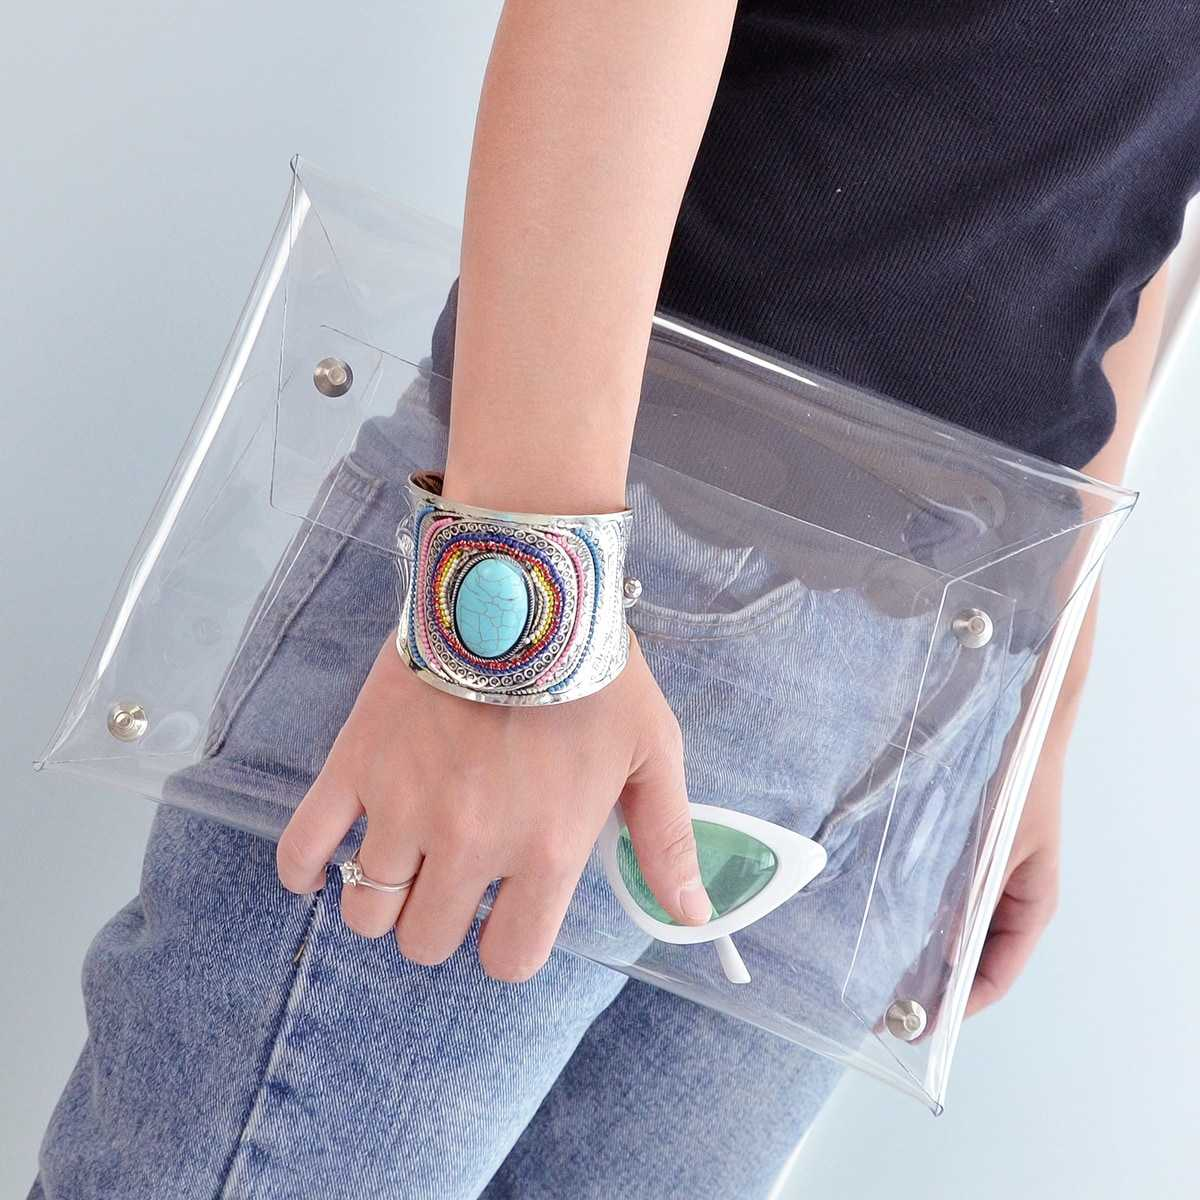 Transparent Envelope Clutch Bag in White by ROMWE on GOOFASH